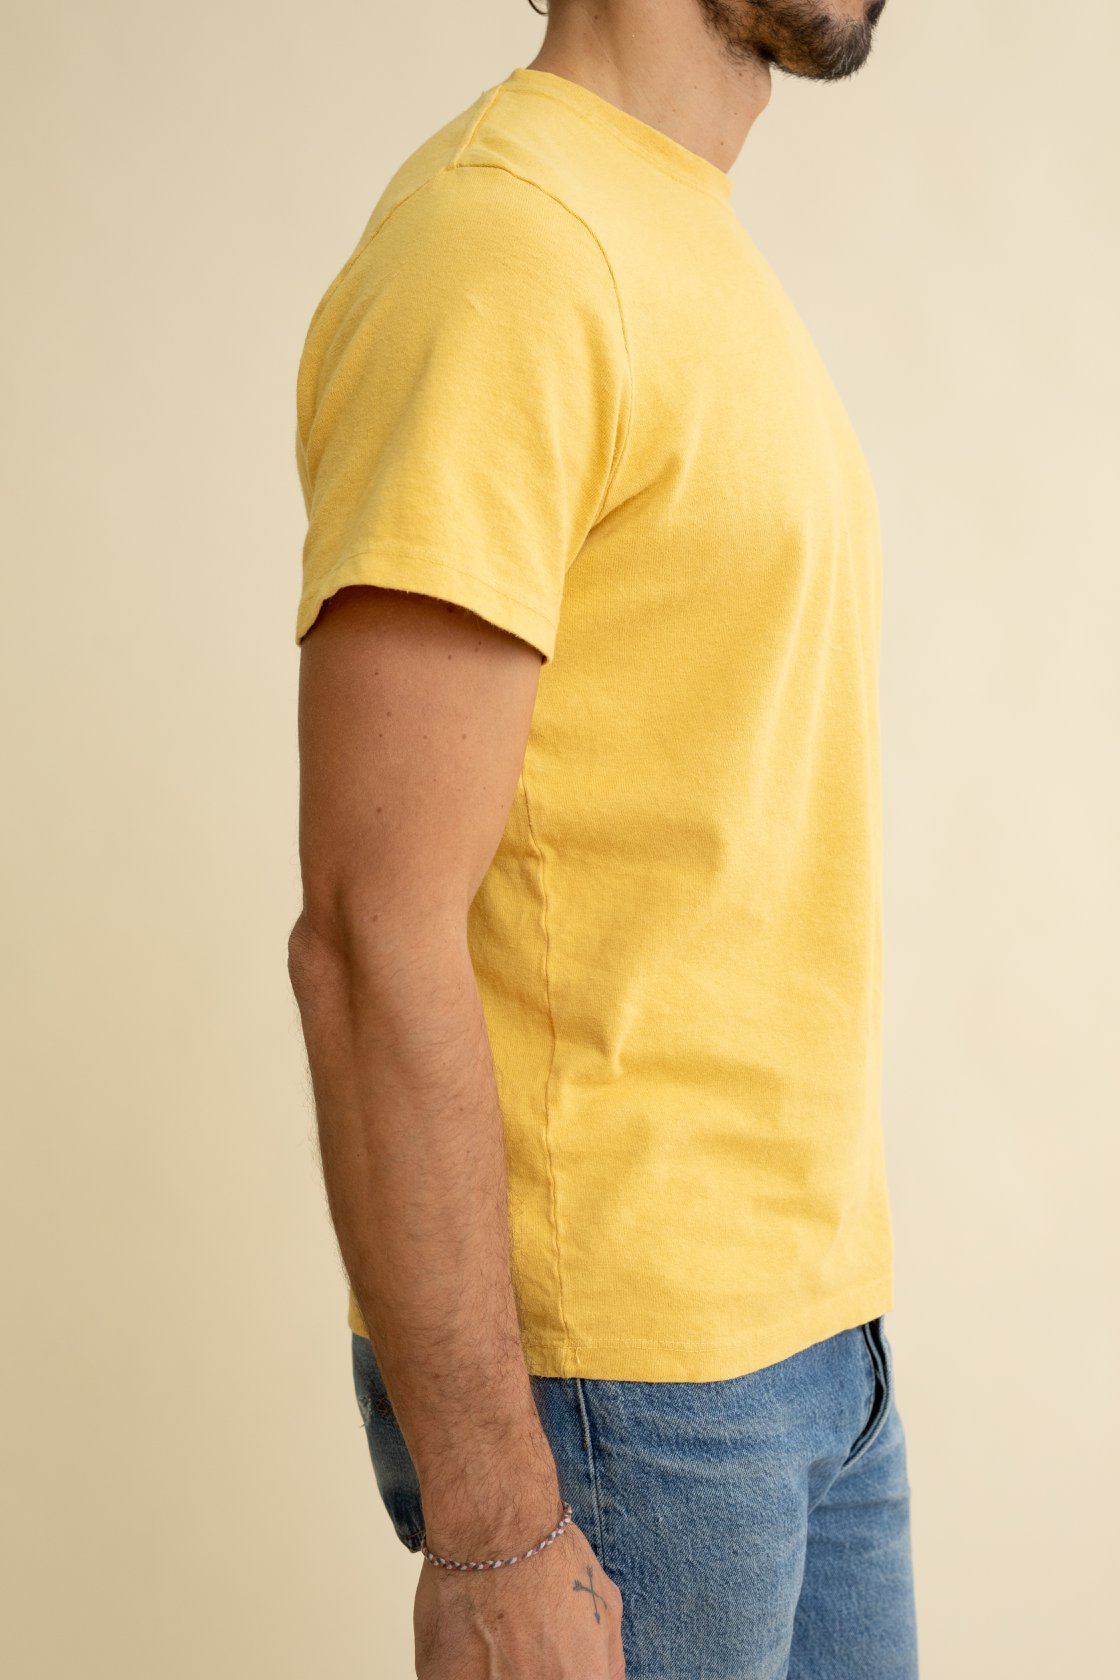 Sunray (or yellow) Baja tee by Jungmaven is a cotton and hemp light t-shirt that is unisex.